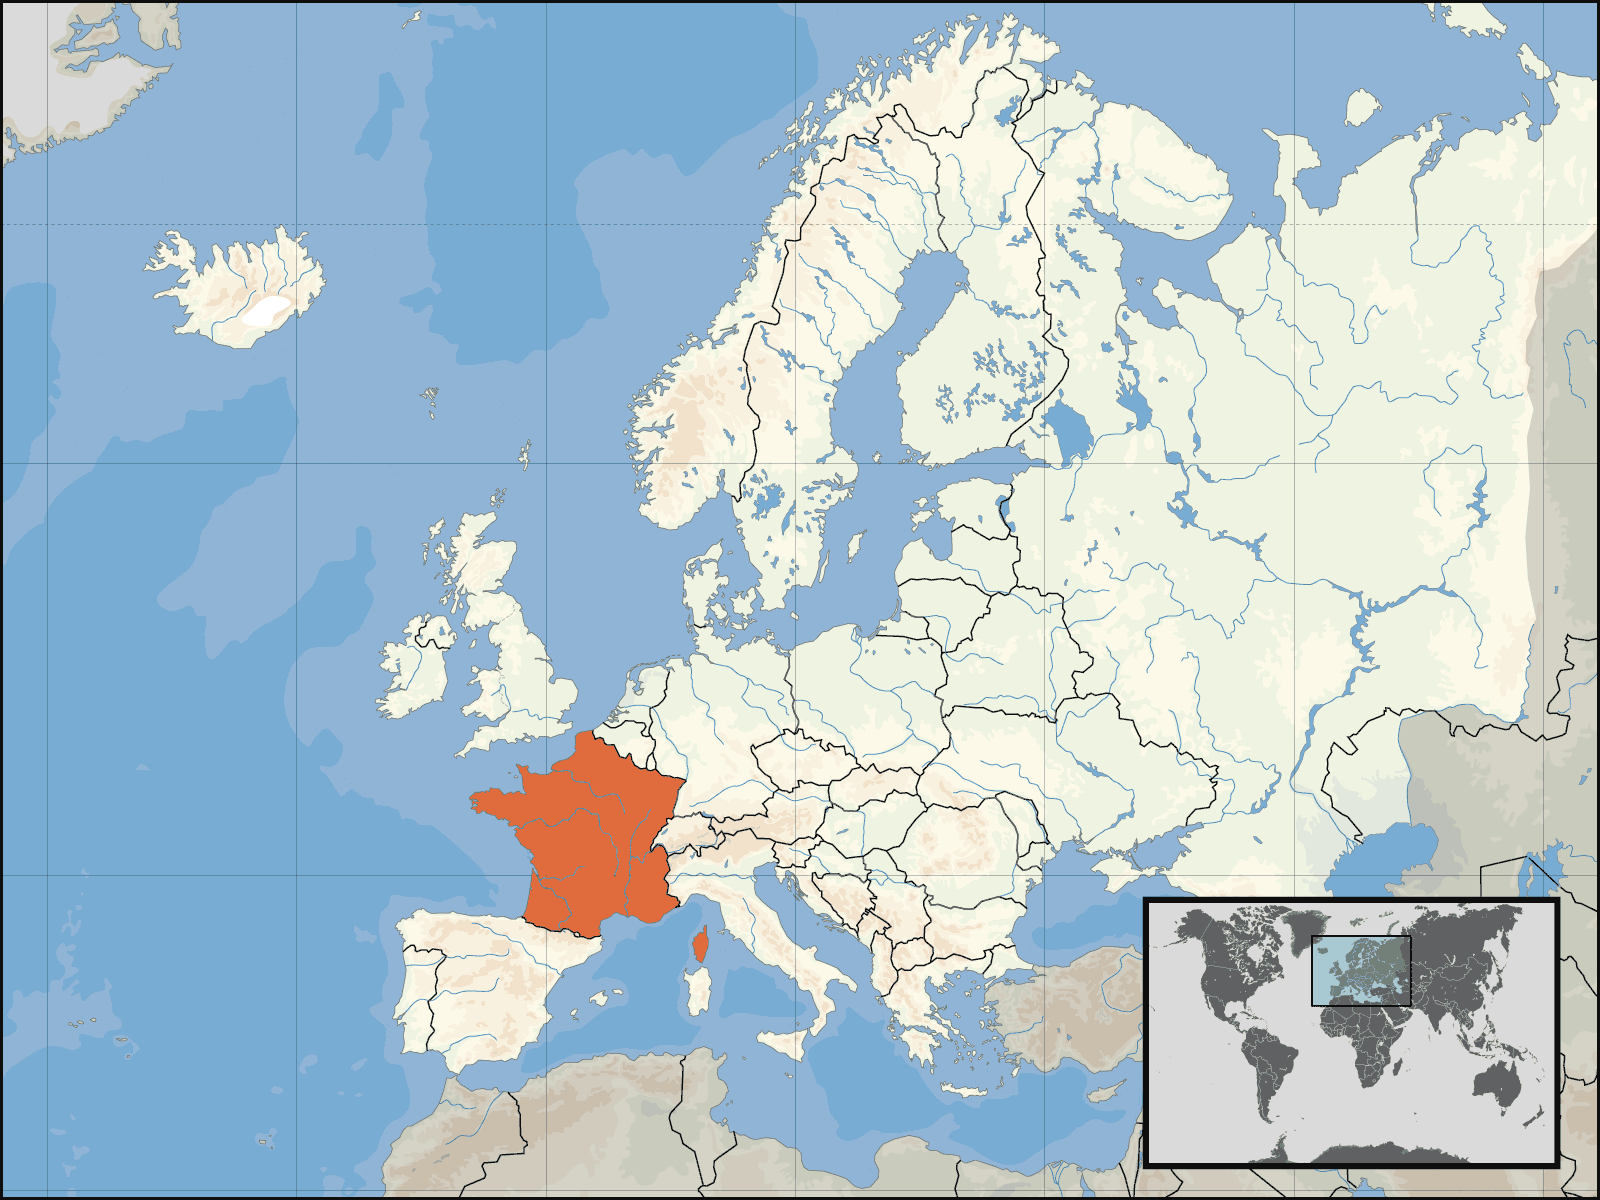 Map Of France Ks2.Ks2 Geography Place Knowledge 2b I France Its Location The